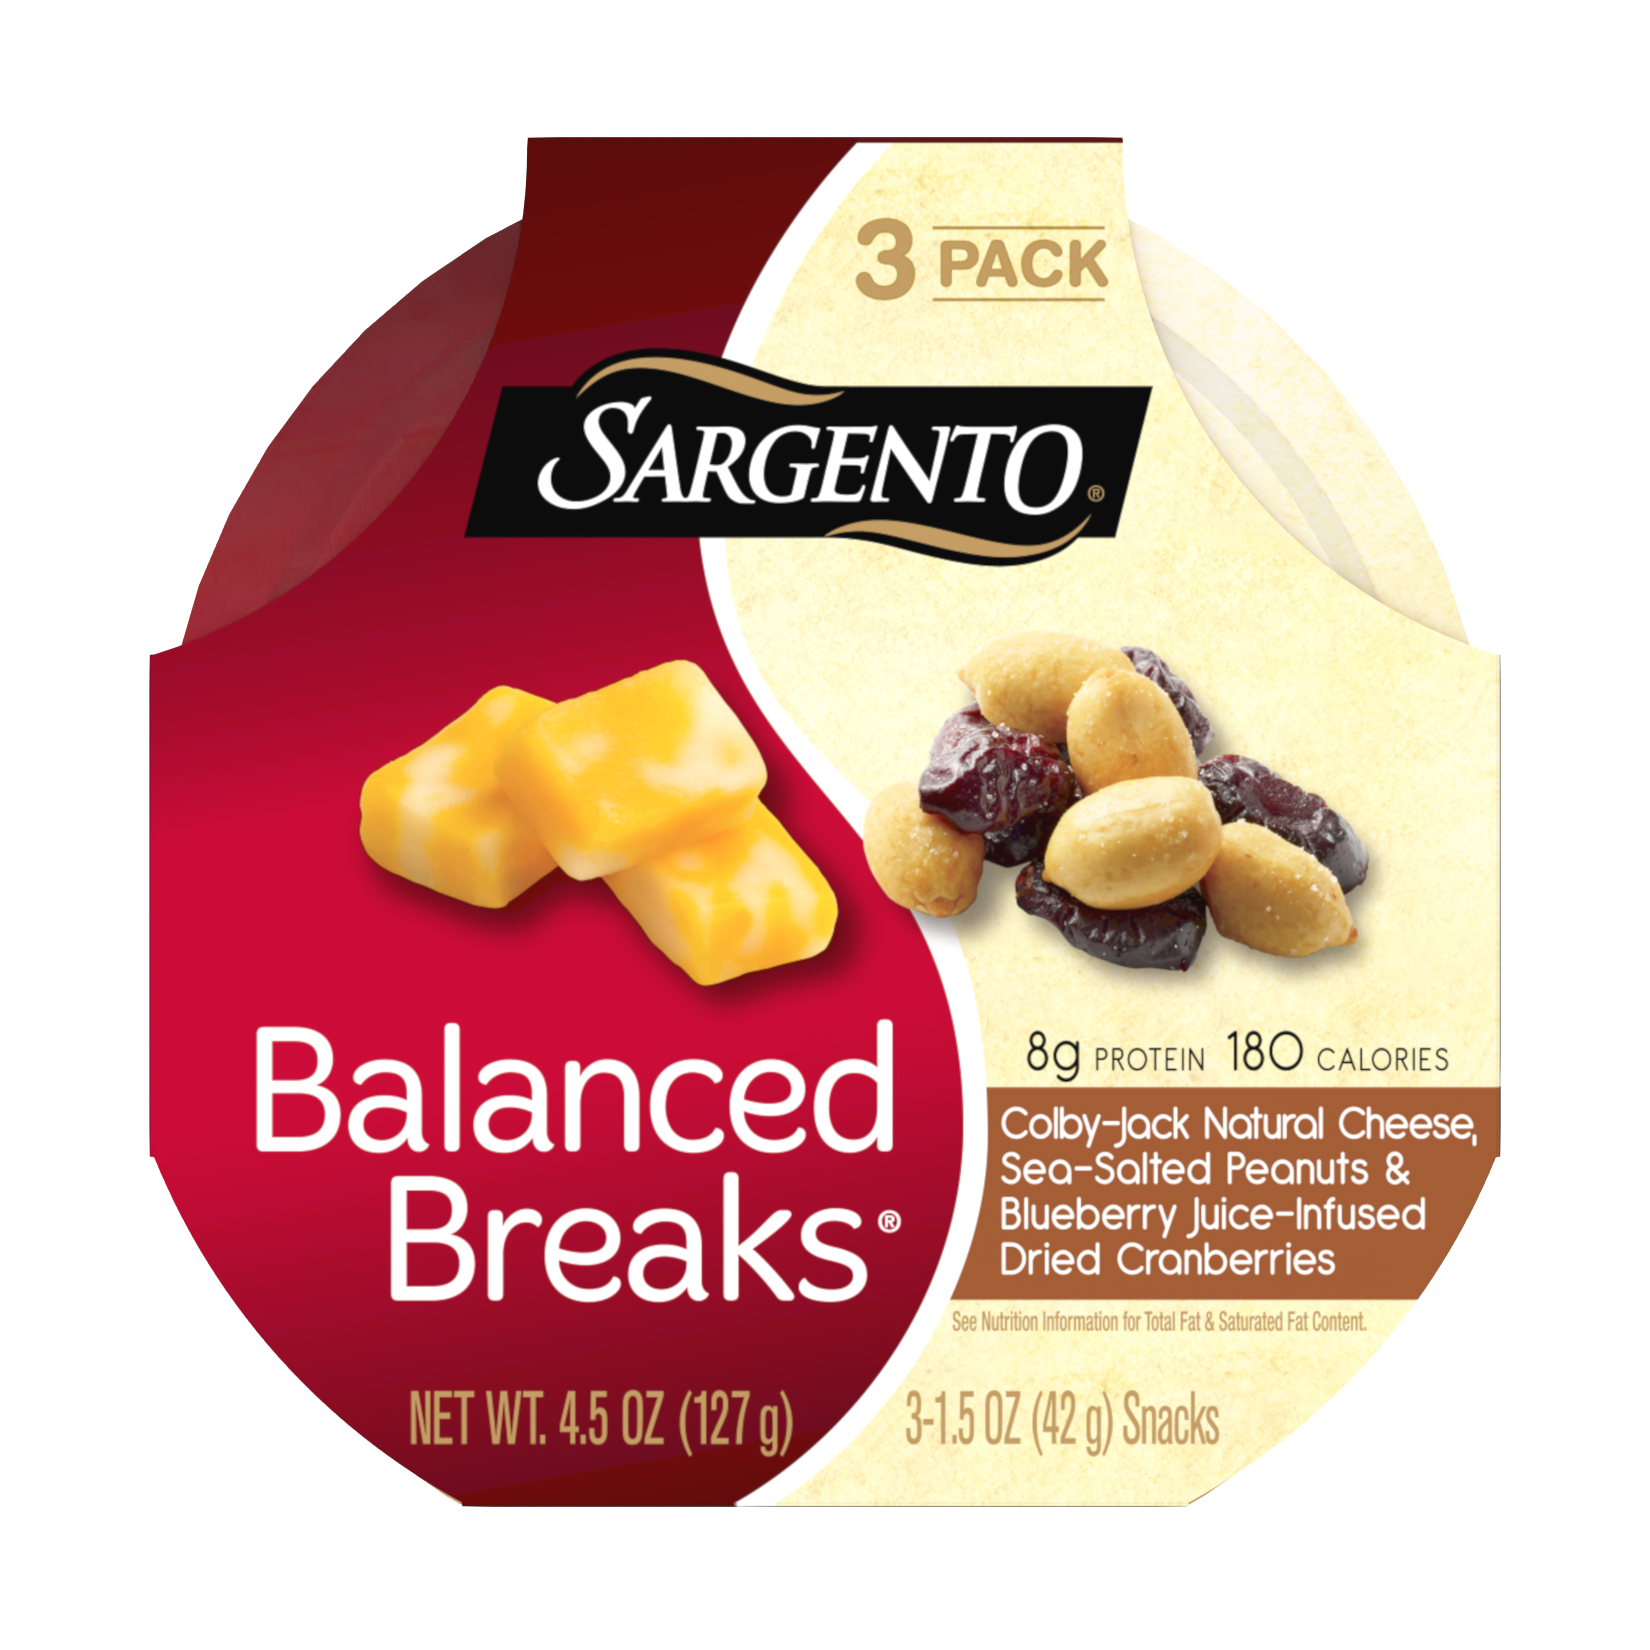 Sargento® Balanced Breaks®, Colby-Jack Natural Cheese, Sea-Salted Peanuts and Blueberry Juice-Infused Dried Cranberries